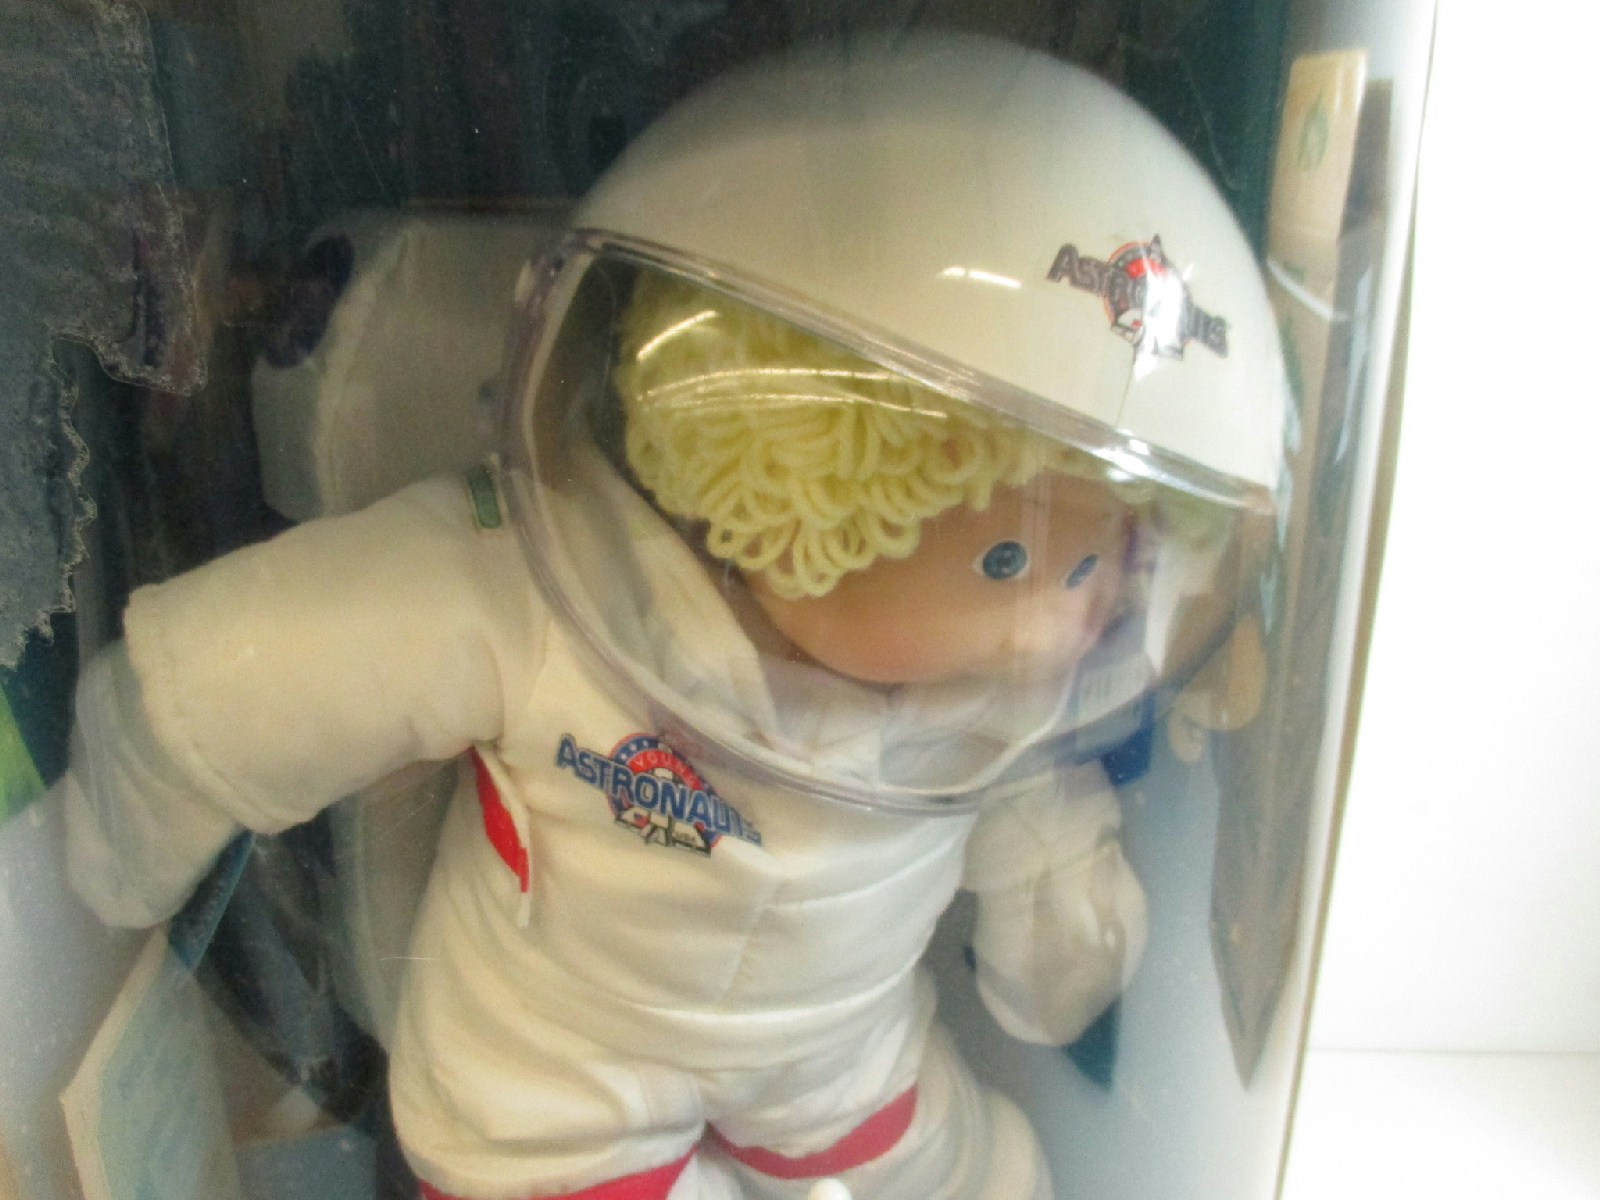 young astronauts cabbage patch doll - photo #25